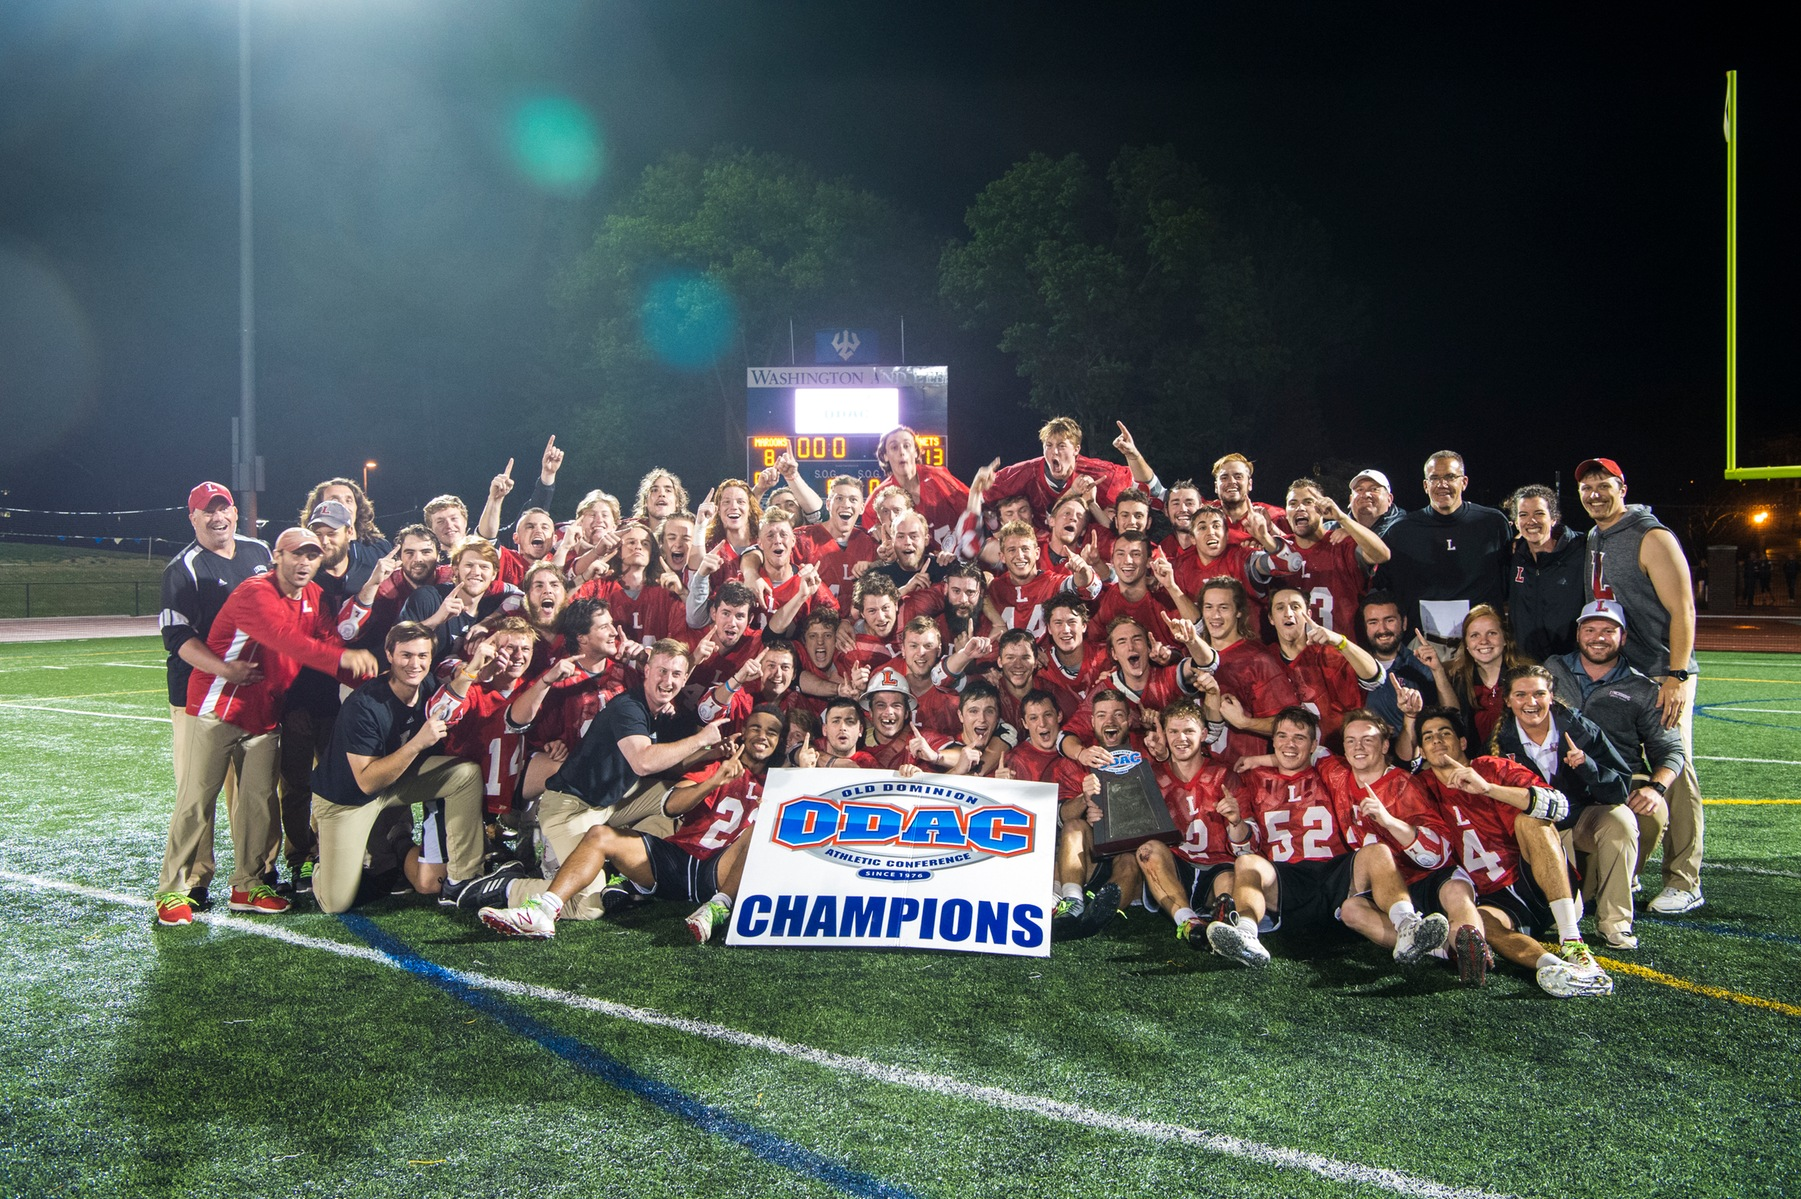 Lynchburg men's lacrosse team poses after winning the ODAC championship